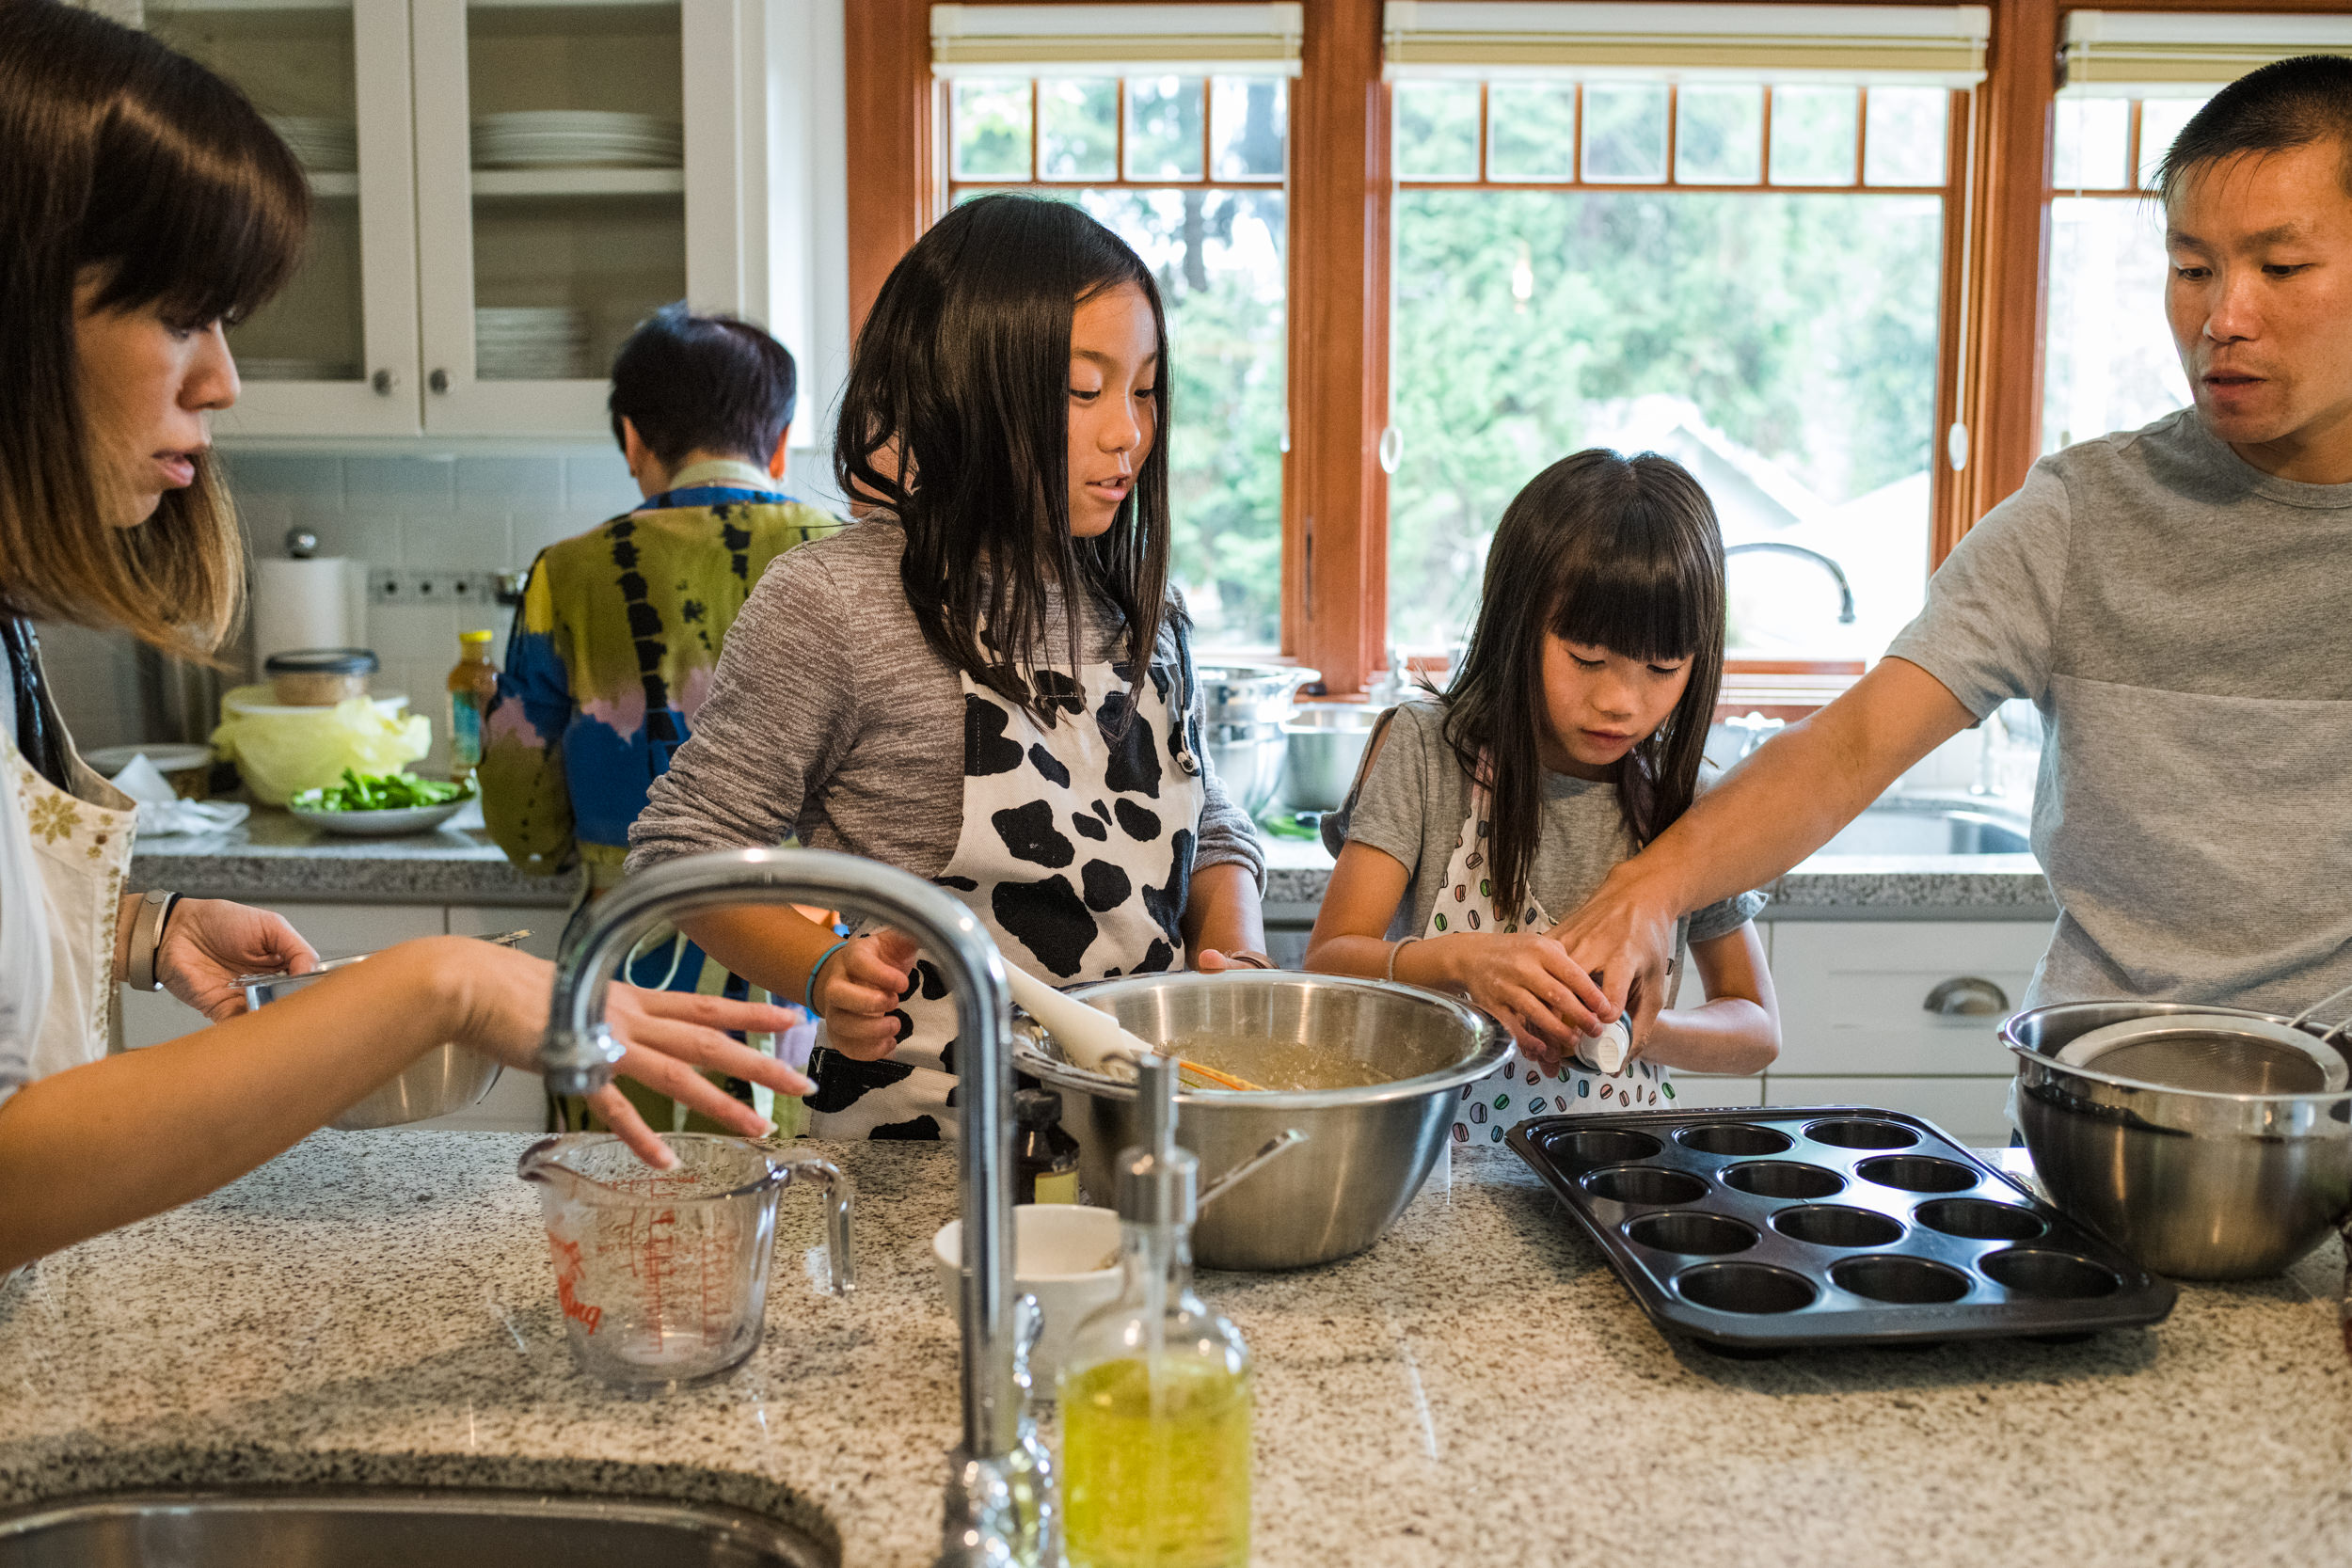 Parents guiding their daughters with baking muffins at the kitchen island.